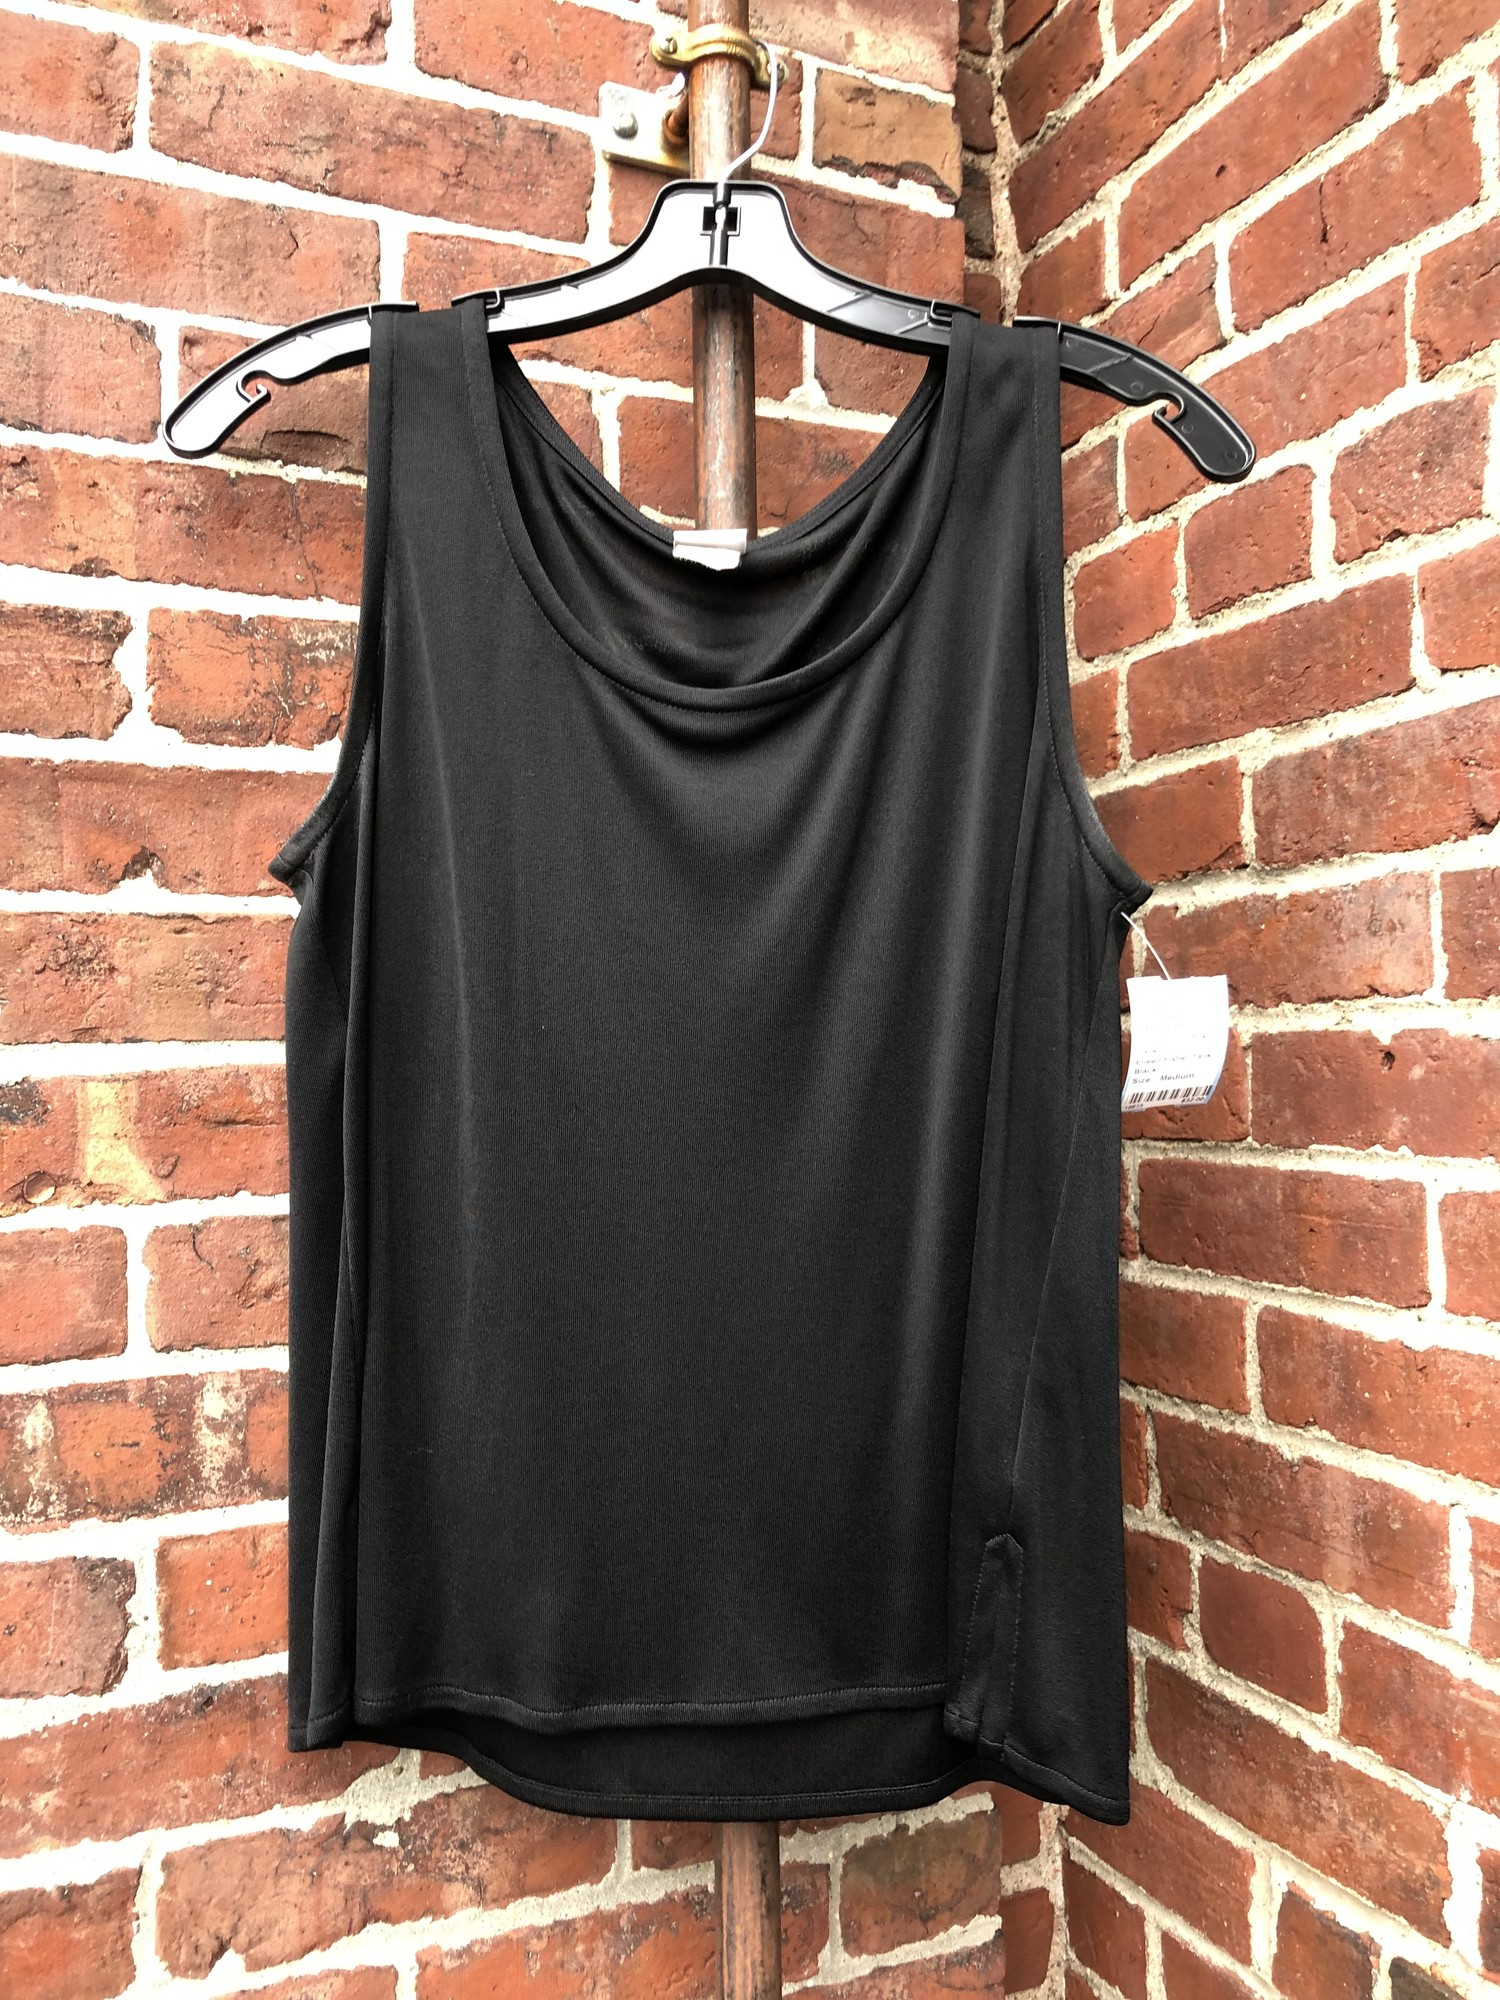 Eileen Fisher Tank, Black, Size: Medium